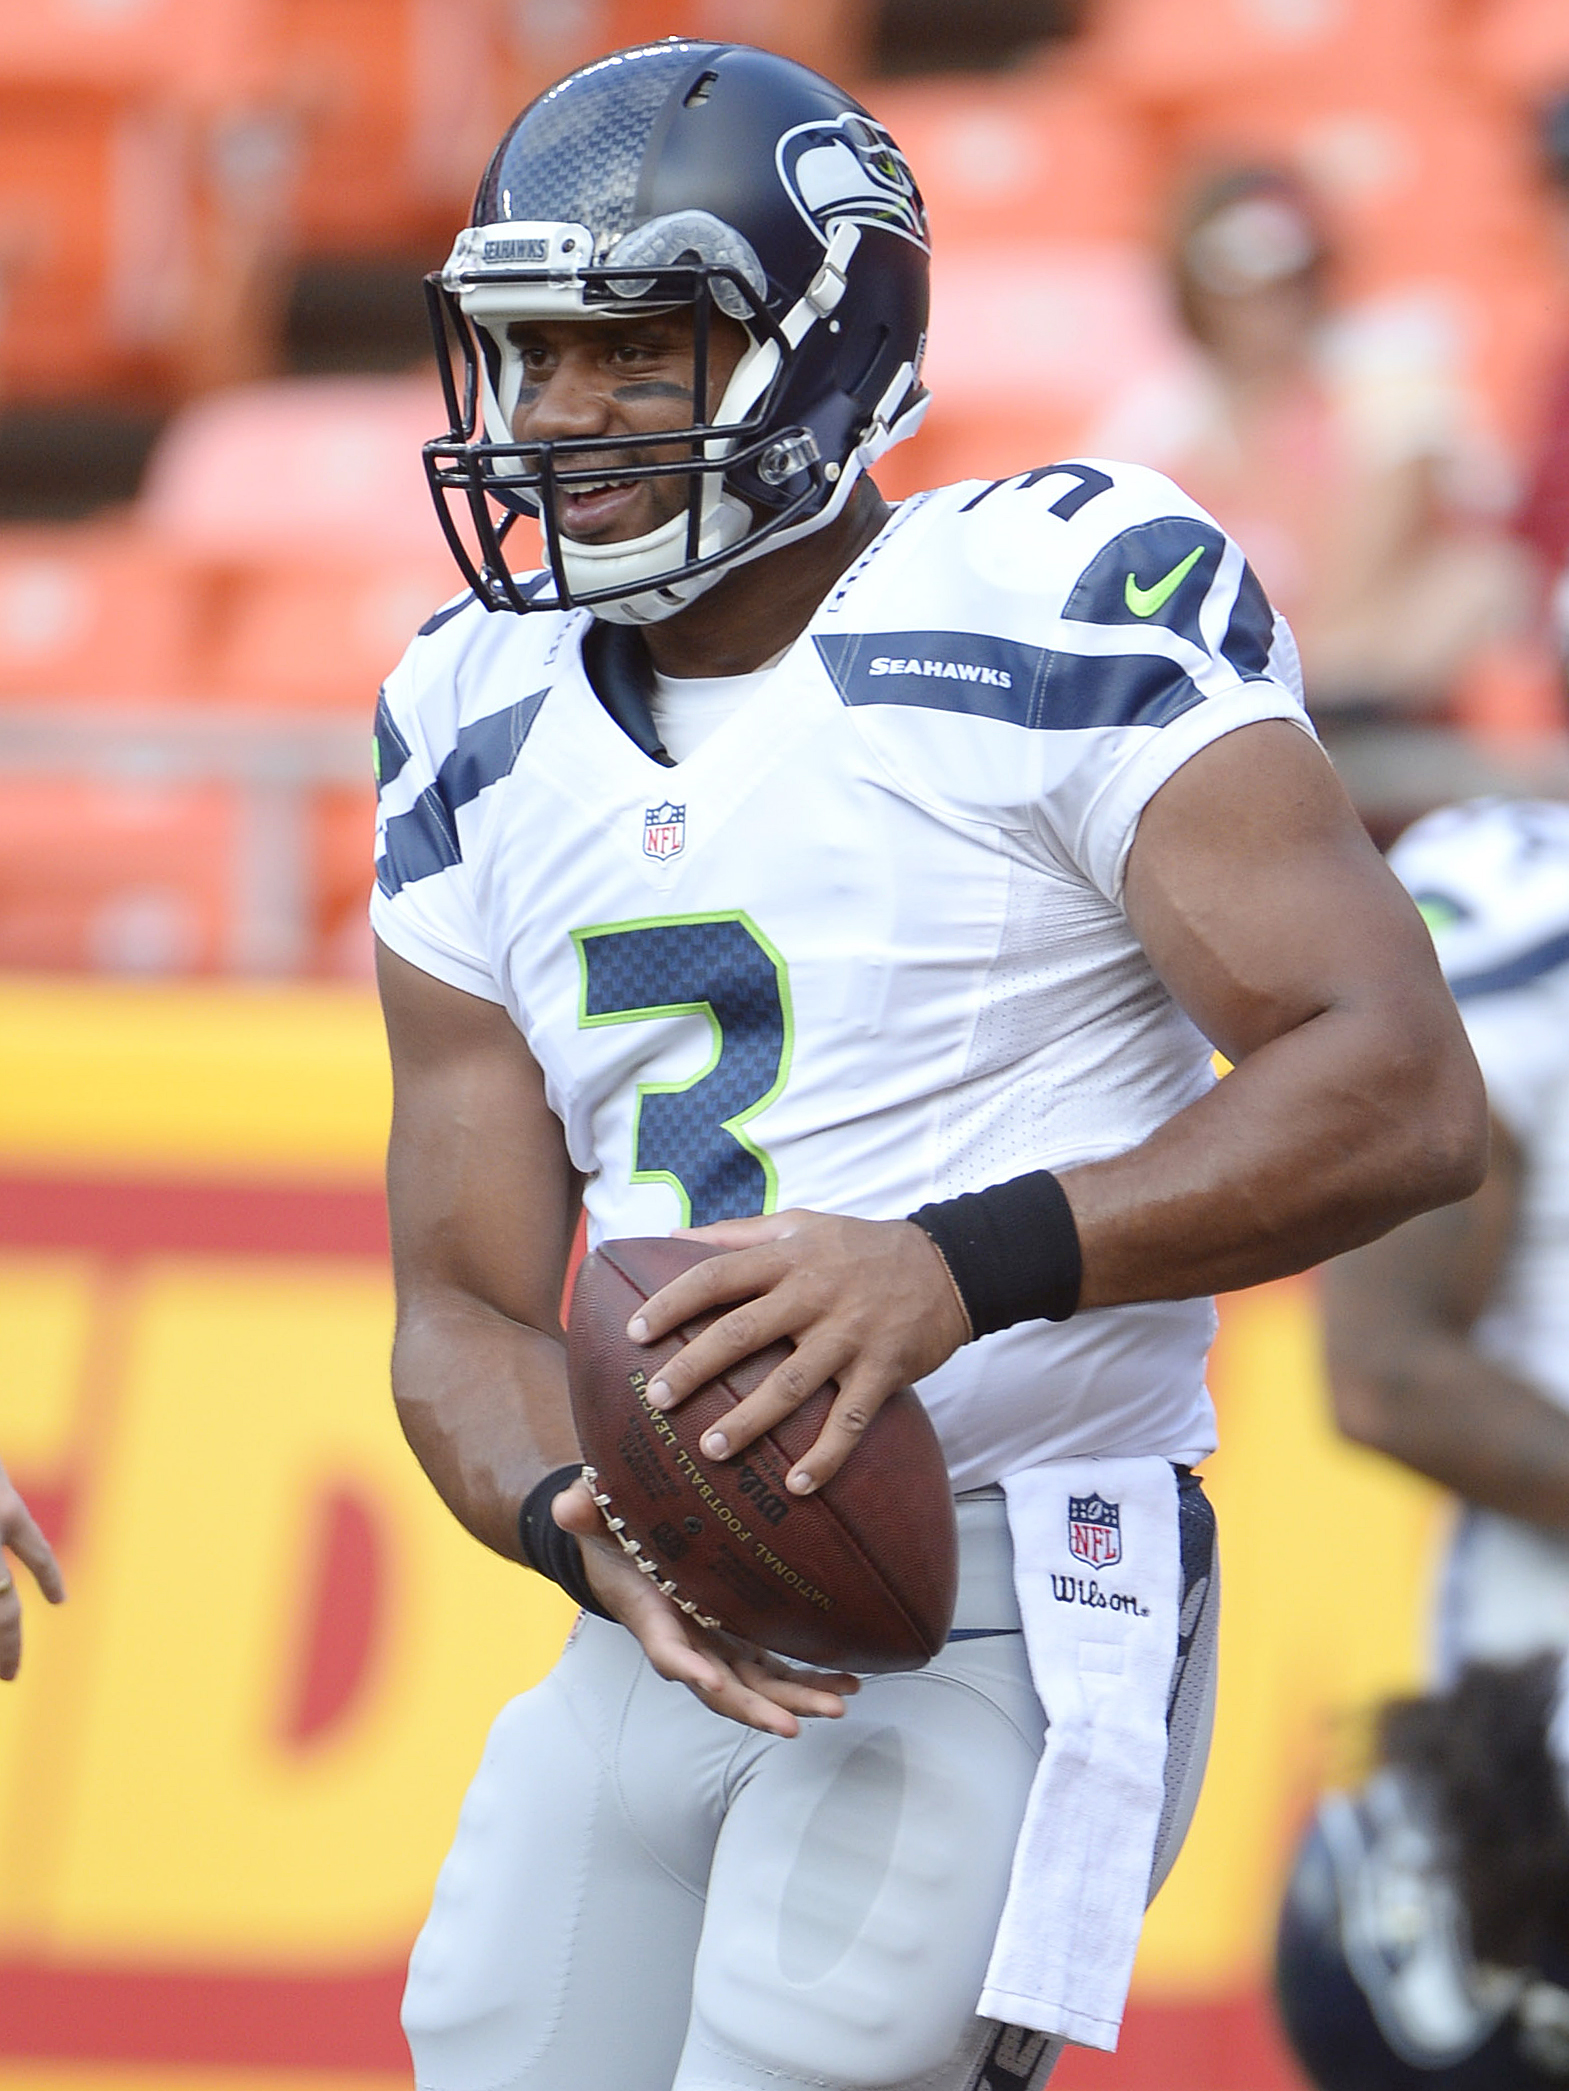 Russell Wilson says his miracle water comments were 'perceived wrong'